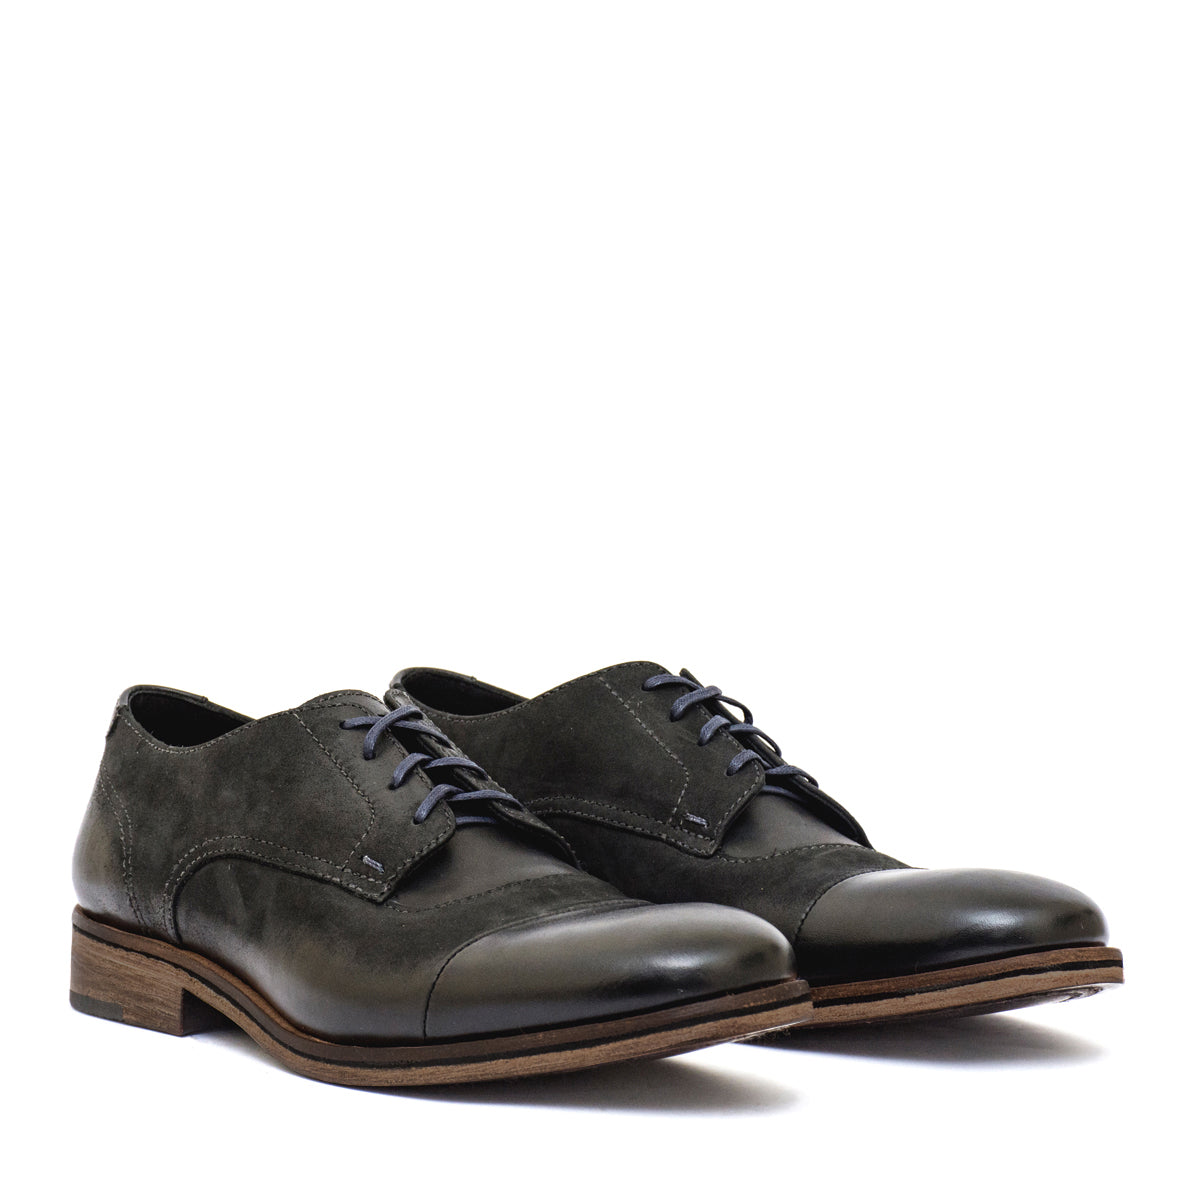 world-wide selection of choose best unique style D.POLO Black - leather shoes